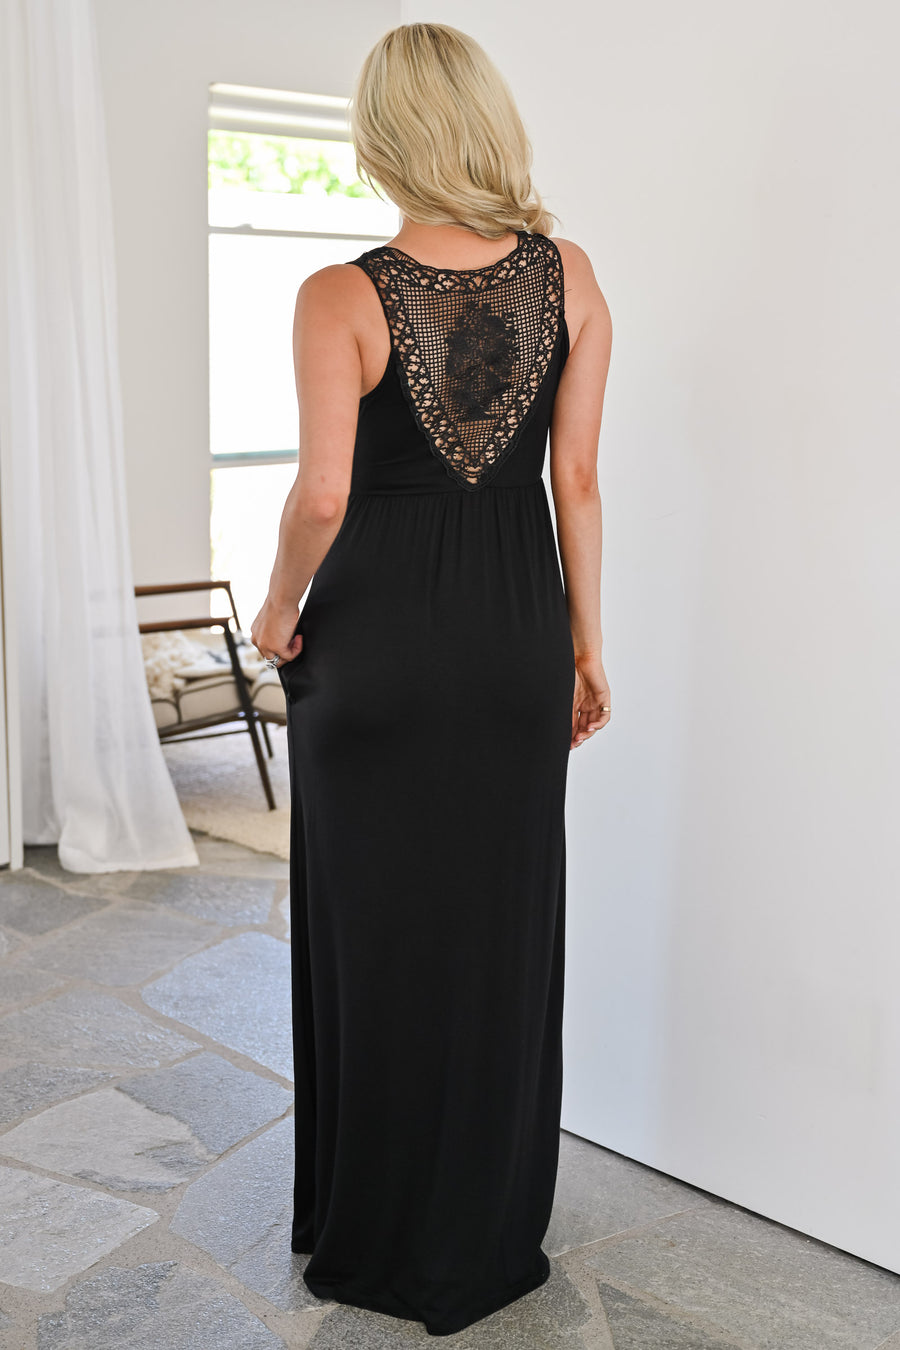 Back To Where It Began Maxi Dress - Black womens trendy long black dress with crochet detail closet candy front